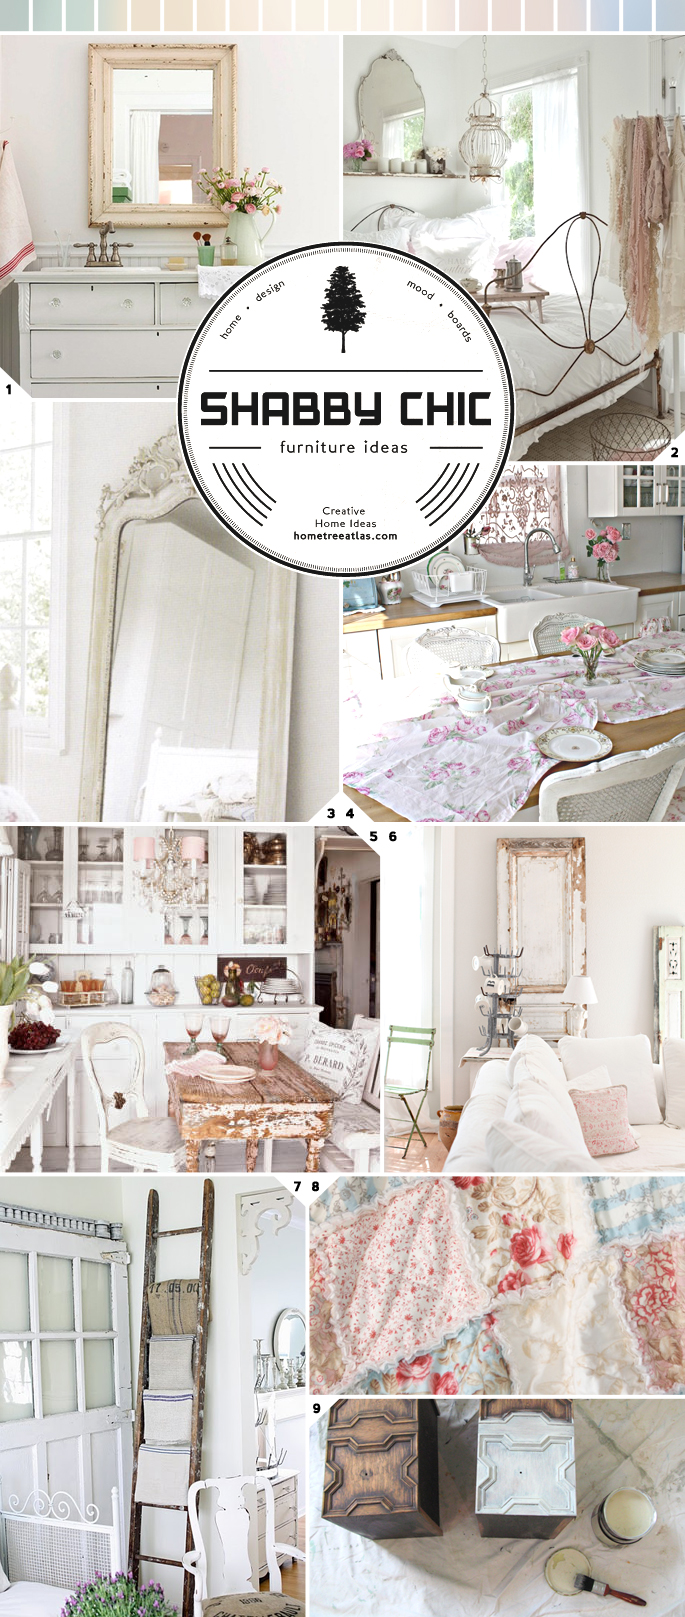 Romance at Home: Shabby Chic Furniture Ideas | Home Tree Atlas